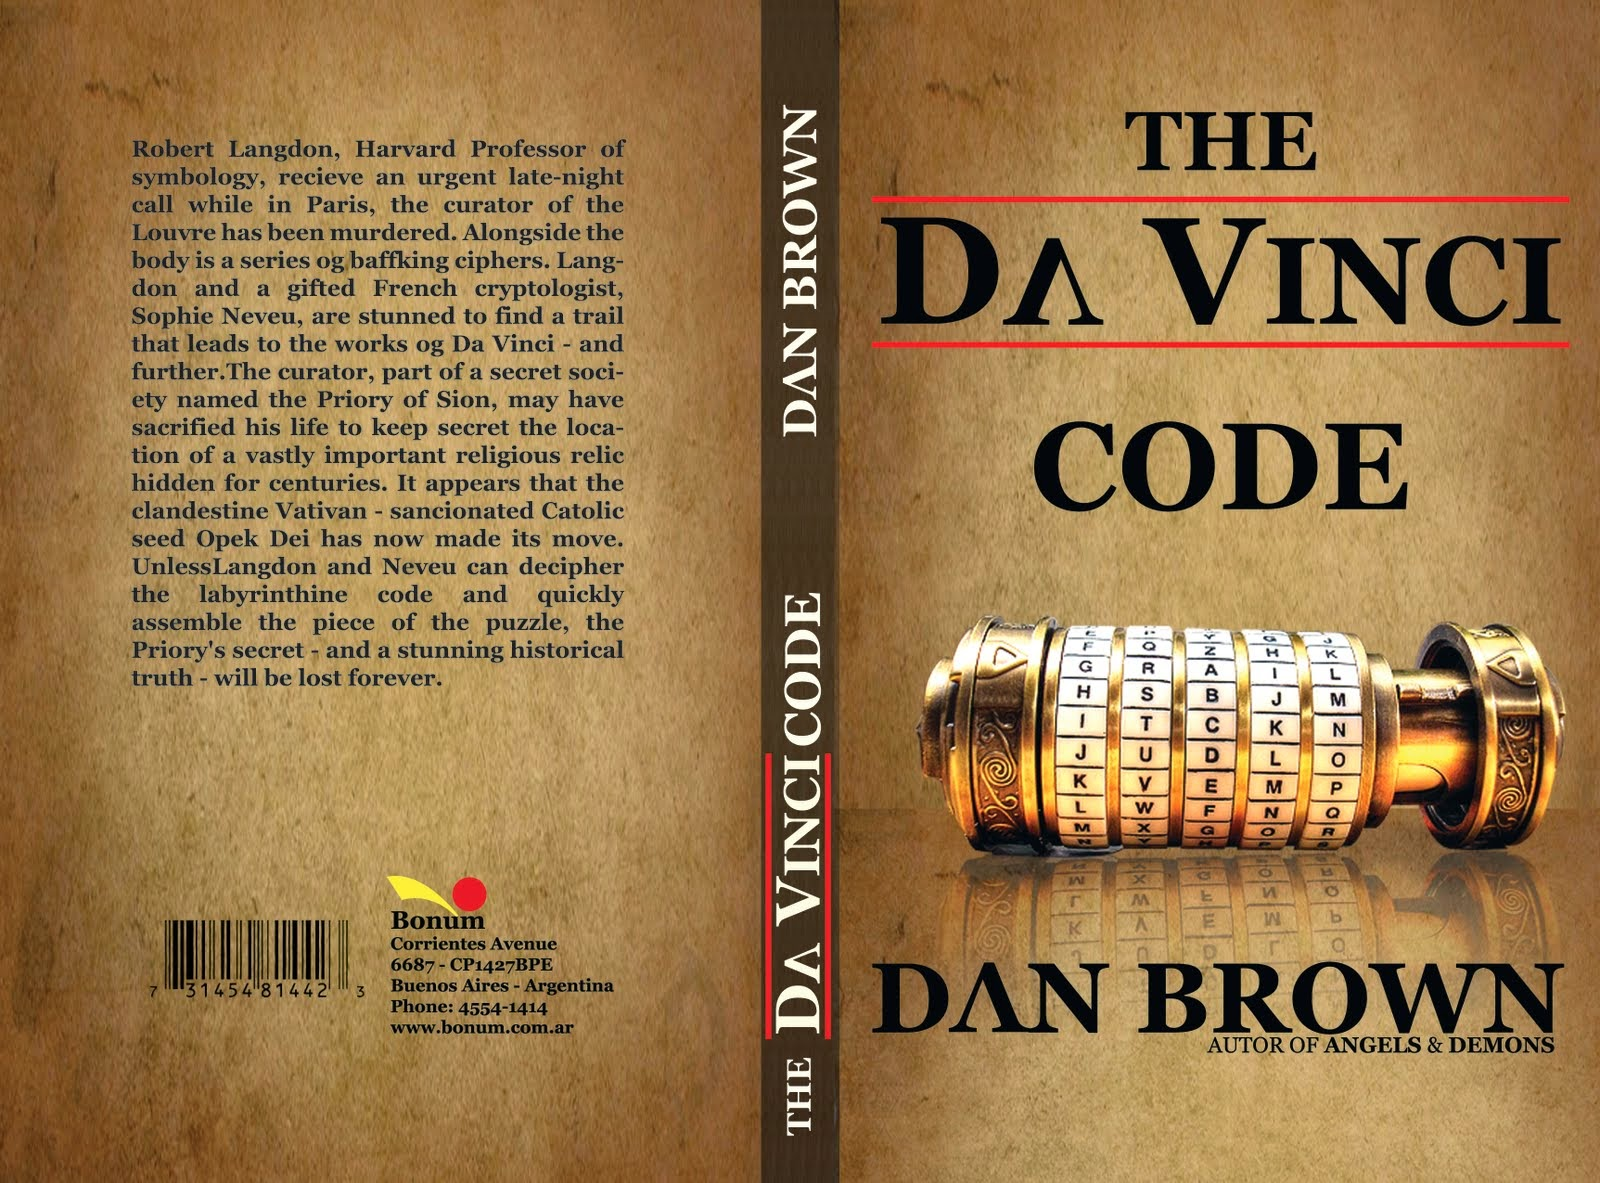 summary of the da vinci code The da vinci code is a 2003 mystery thriller novel by dan brown it follows  symbologist robert langdon and cryptologist sophie neveu after a murder in  the.